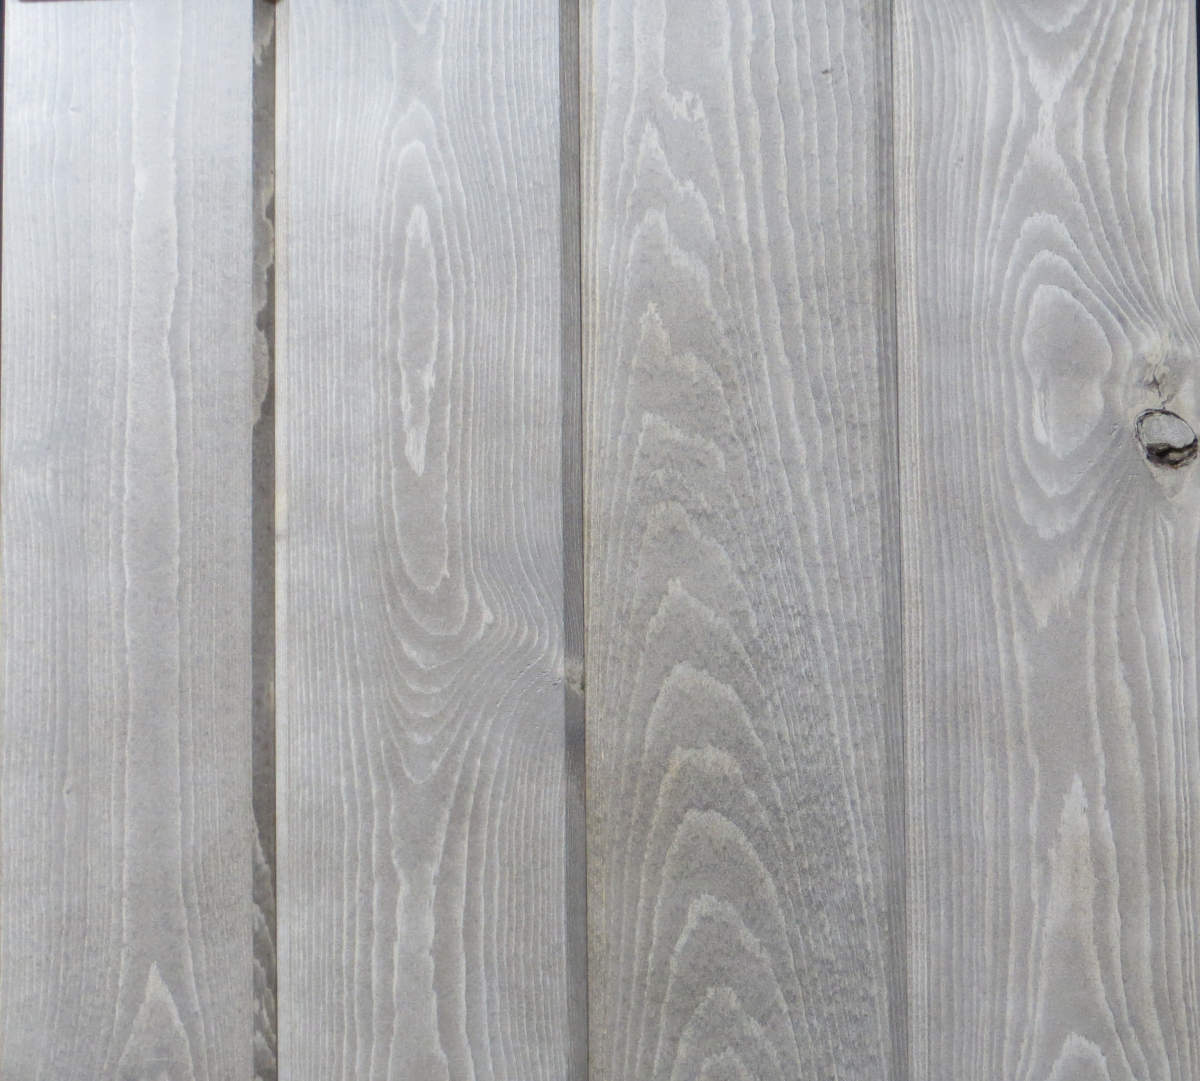 Wicked Wood Pine Paneling - DARK GREYSTONE - Stain plus 2 Clear Coats  (BL08-50)